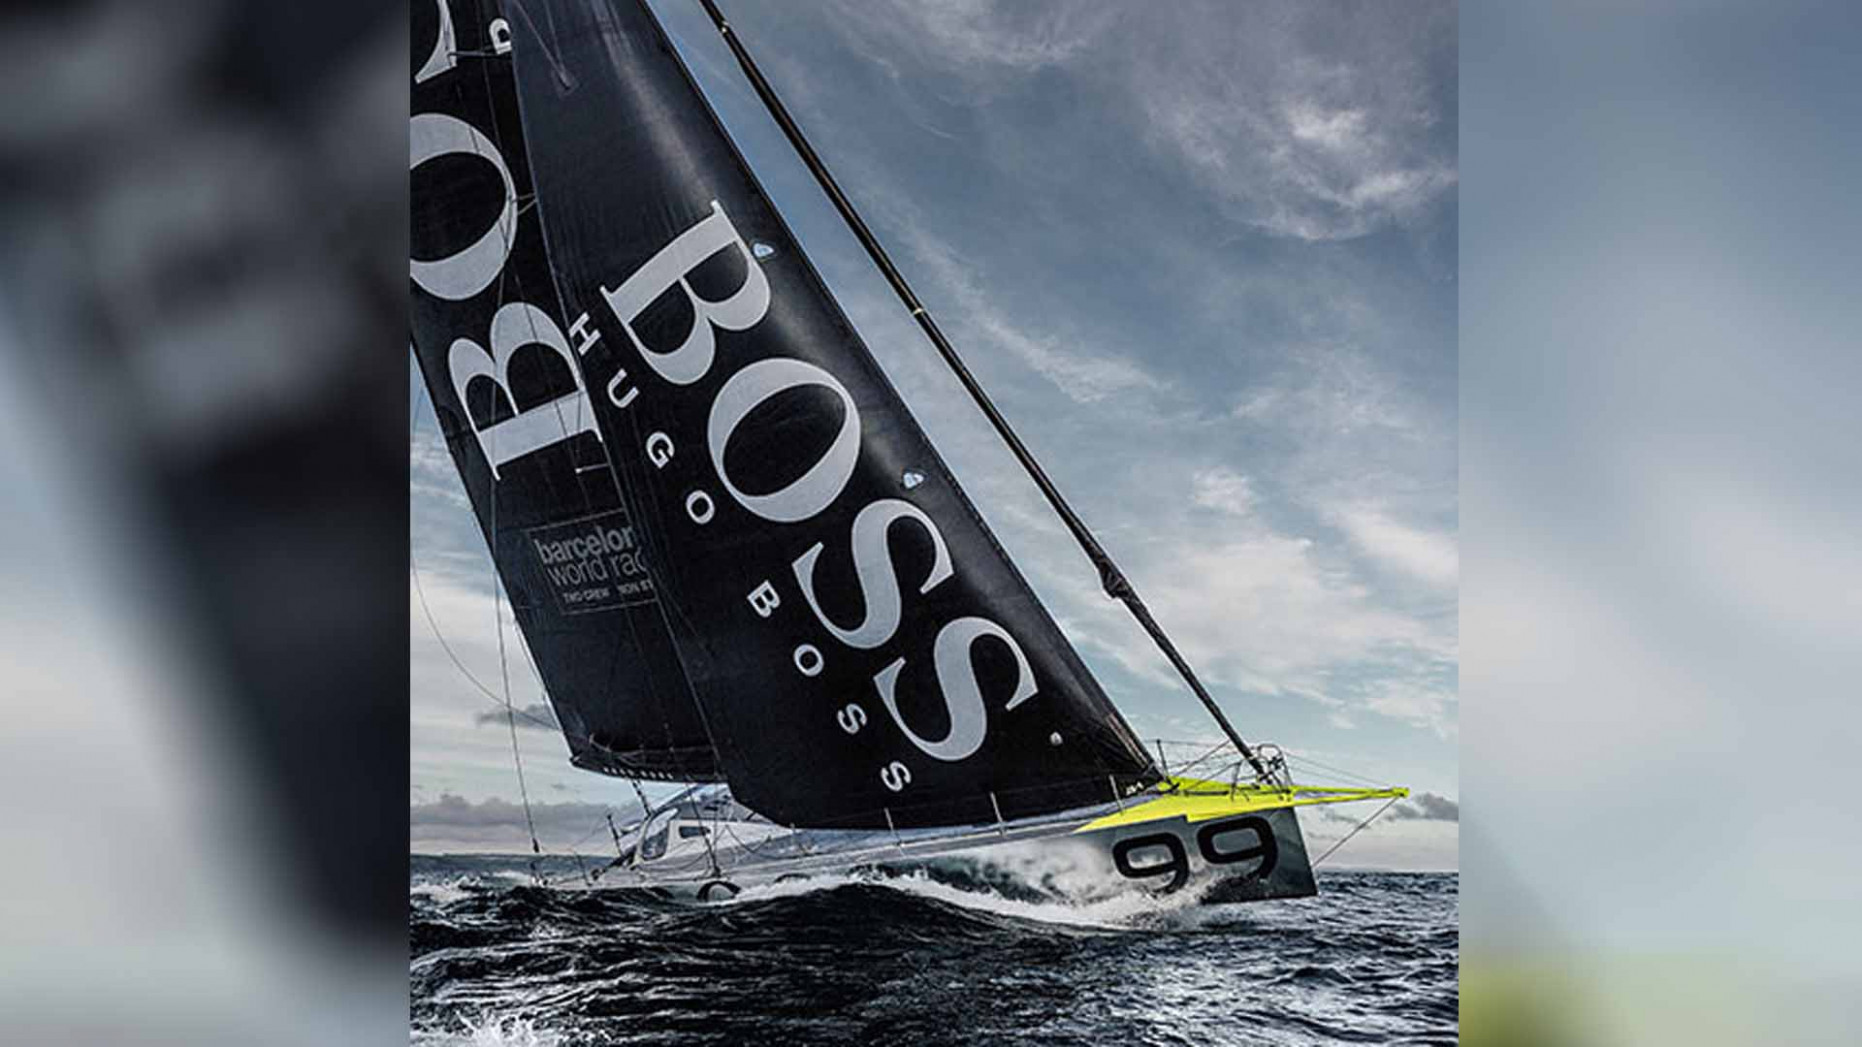 Release Date and Concept Volvo Ocean Race Galway 2022